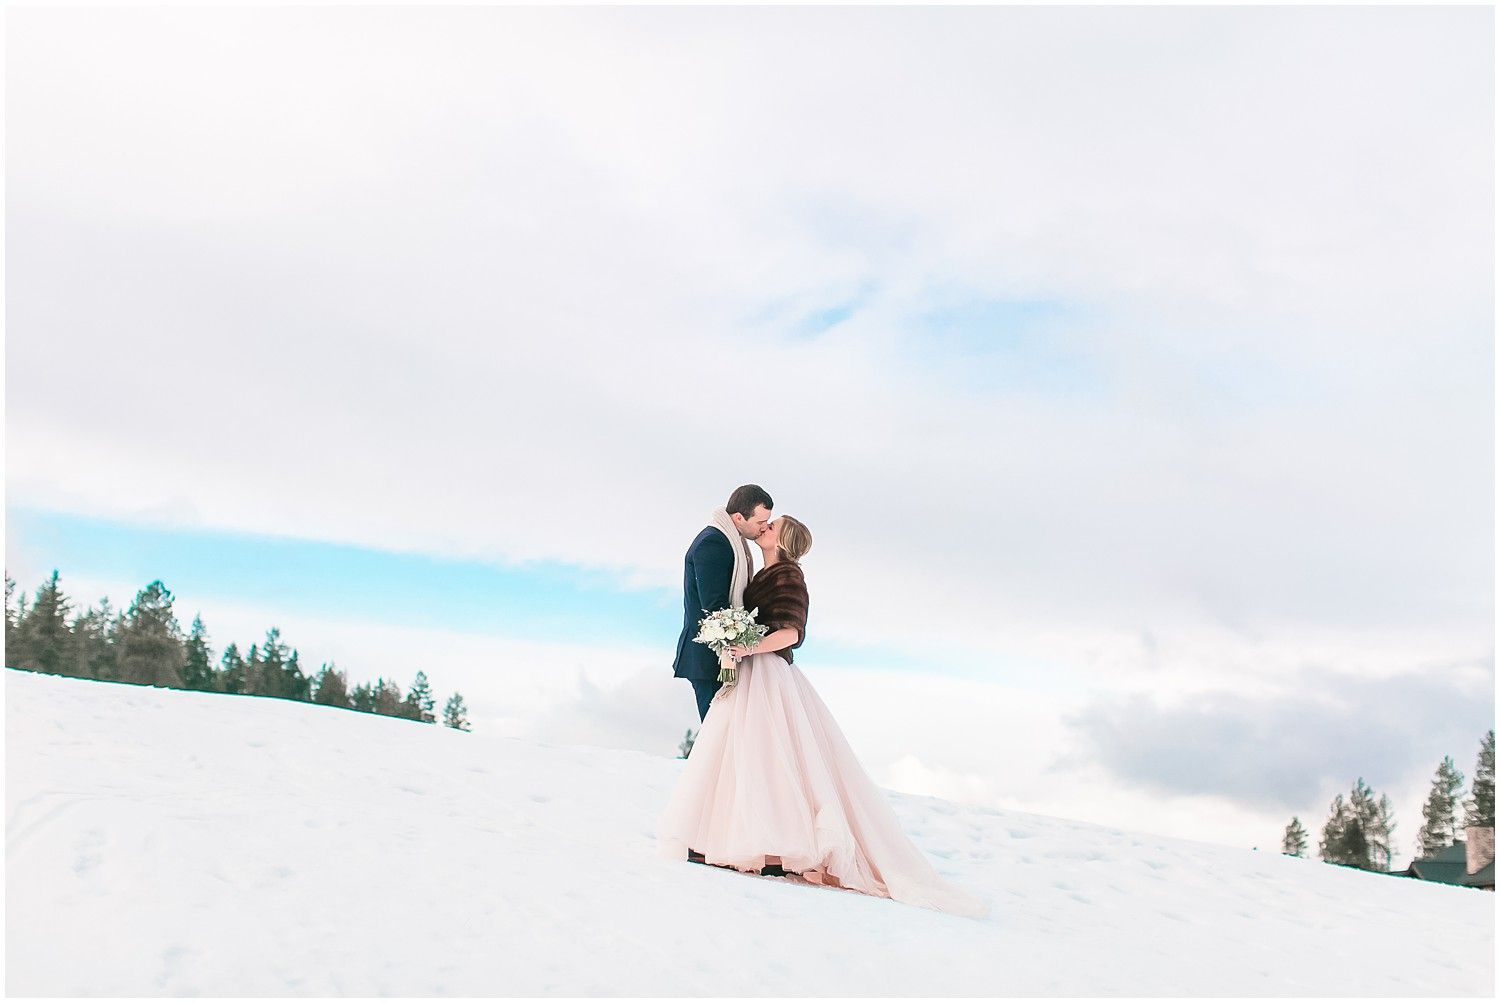 Blush wedding dress in the snow nothing better snowy wedding